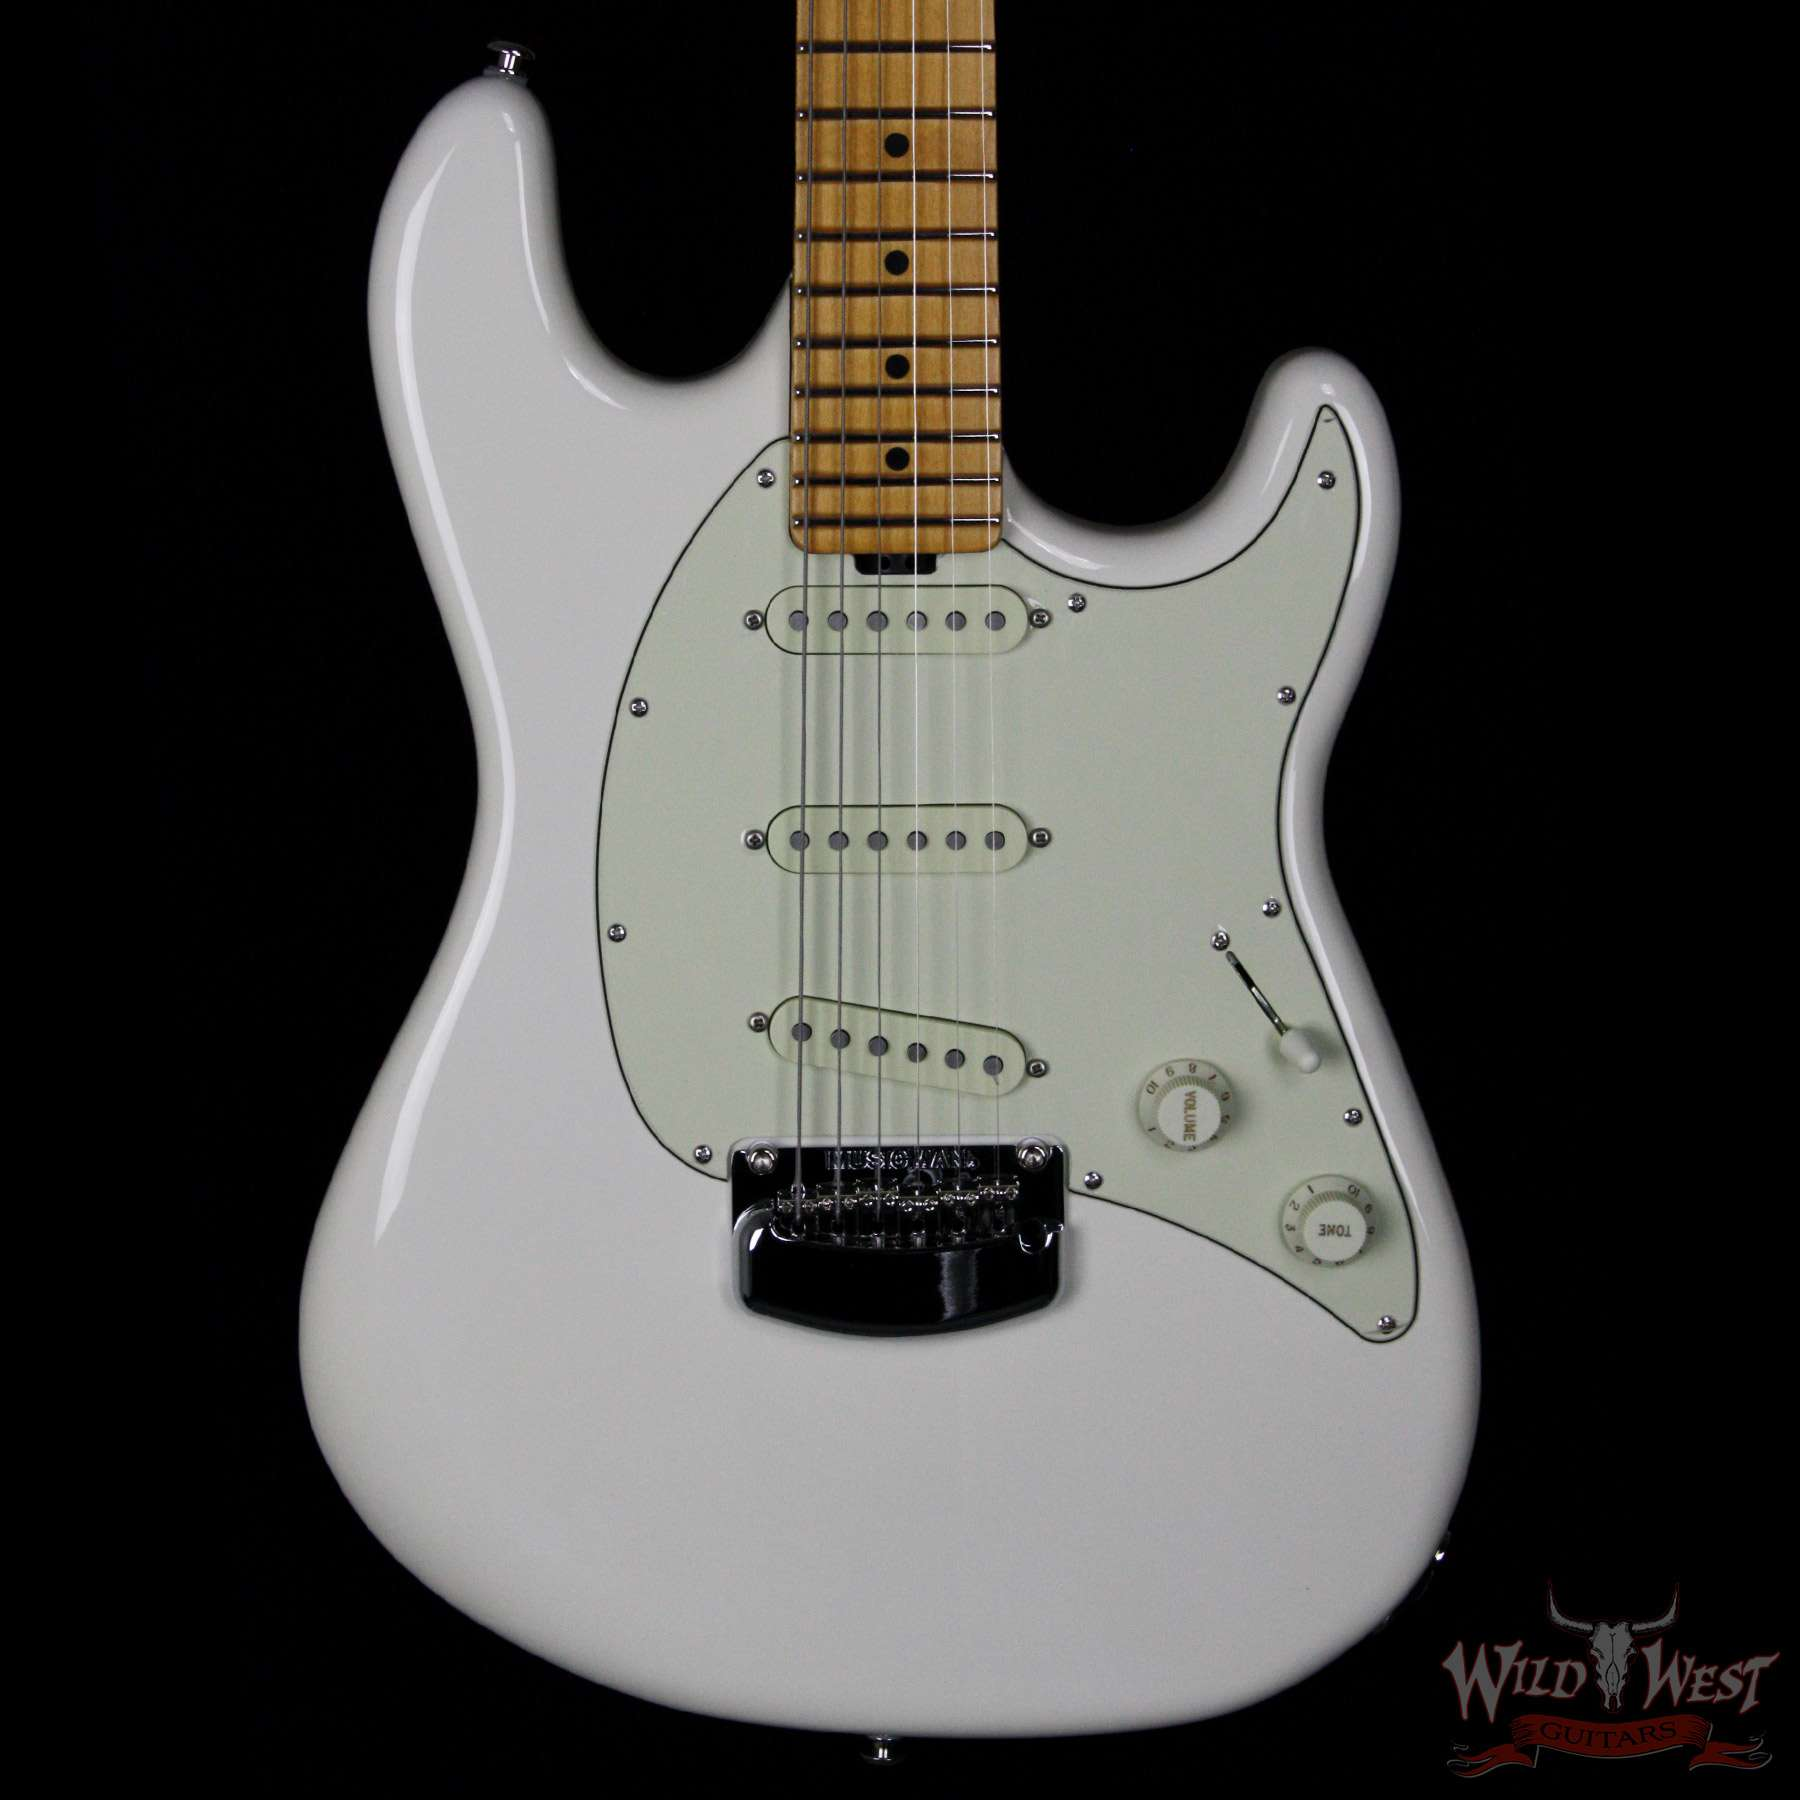 Ernie Ball Music Man Cutlass Ivory White - Wild West Guitars